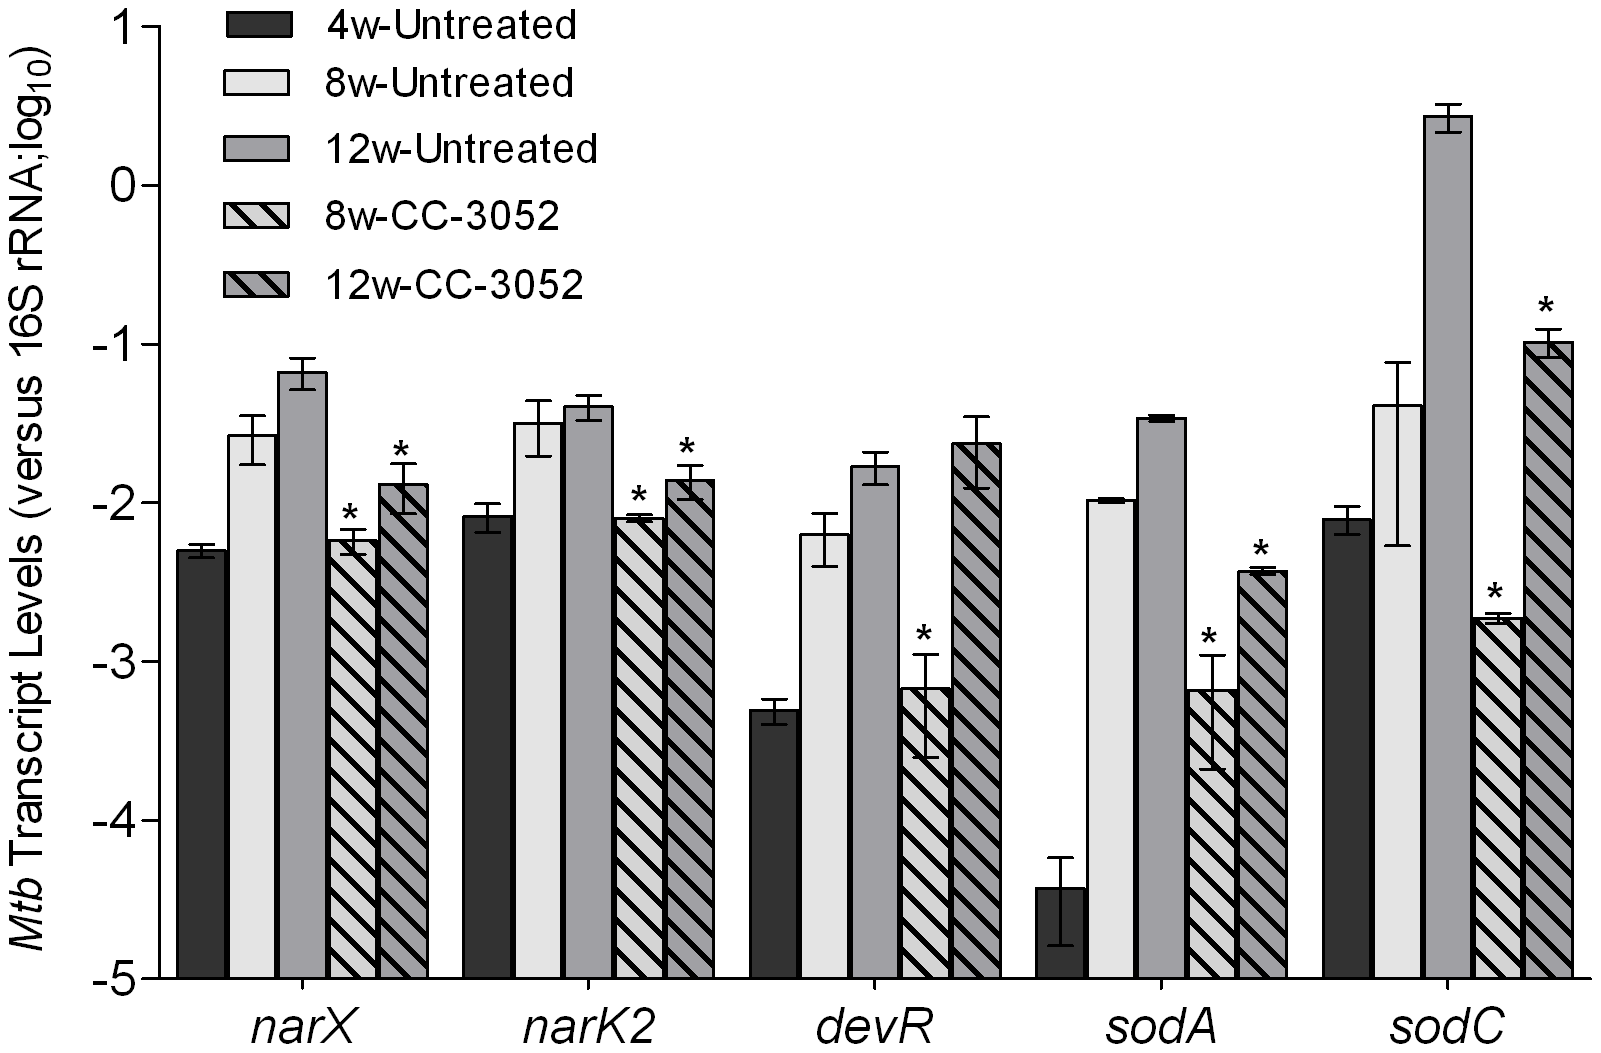 Effect of CC-3052 treatment on the expression of <i>Mtb</i> stress response genes in rabbit lungs.